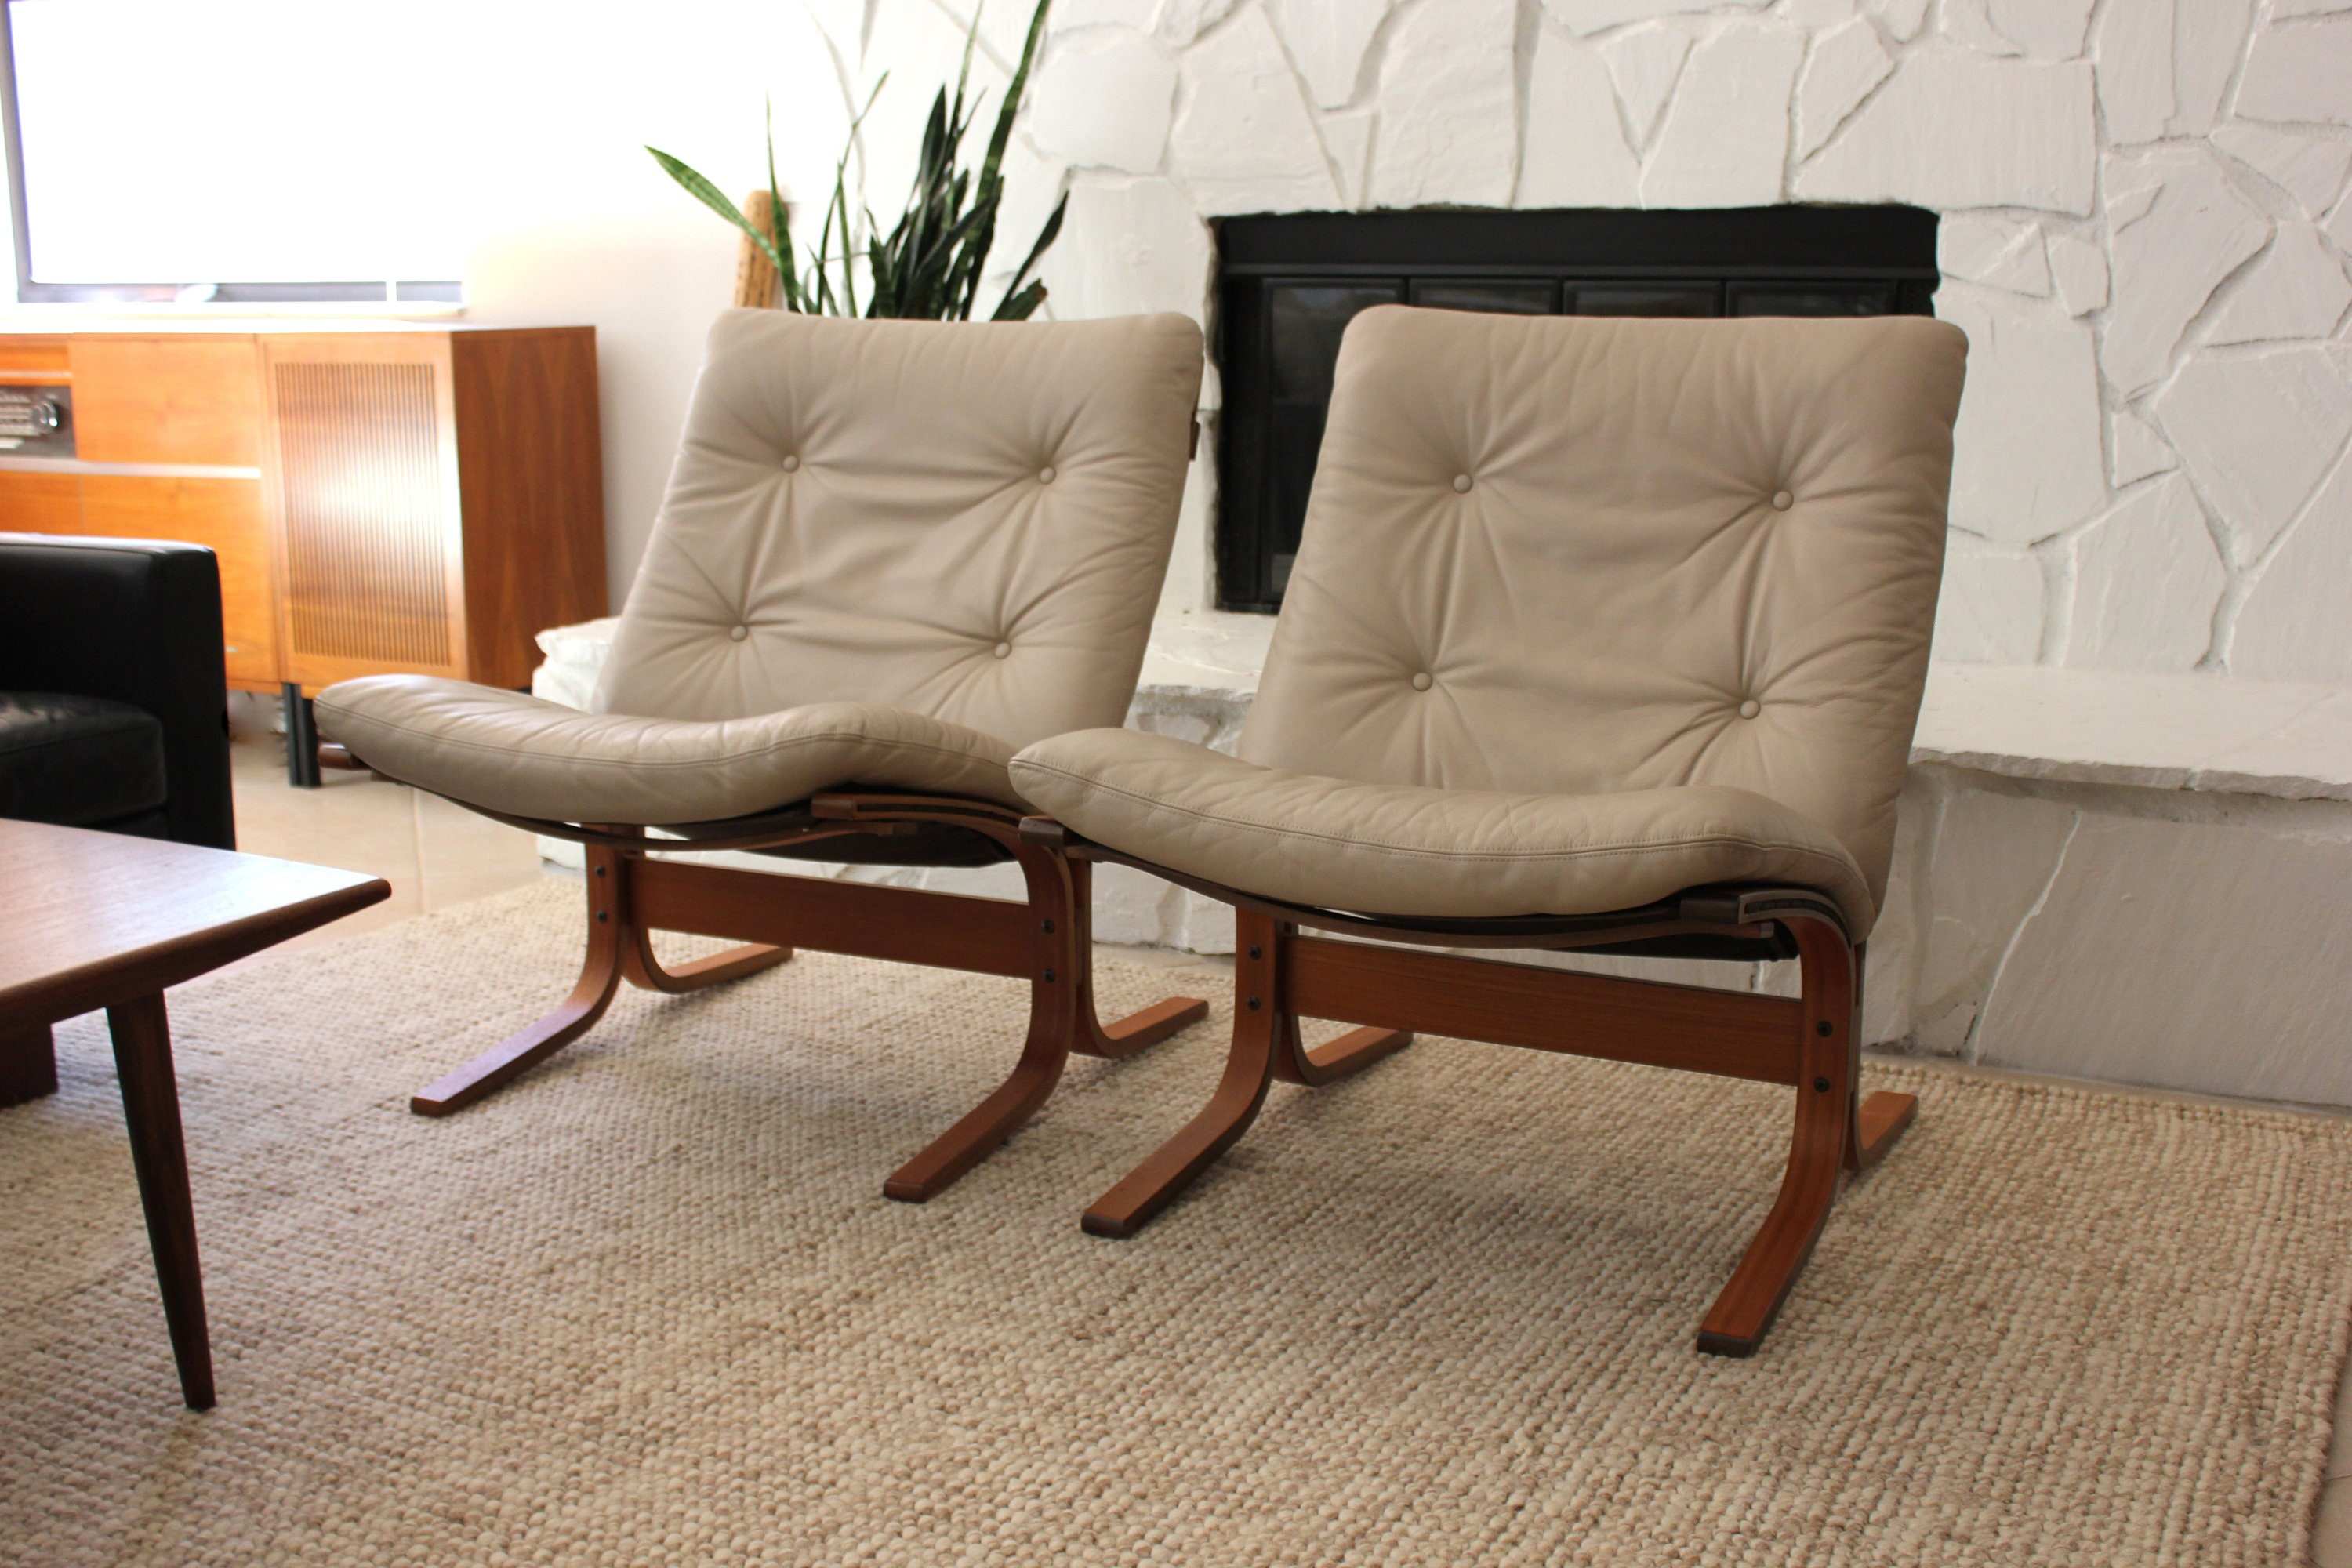 Marvelous Pair Mid Century Modern Westnofa Greige Leather Siesta Gmtry Best Dining Table And Chair Ideas Images Gmtryco